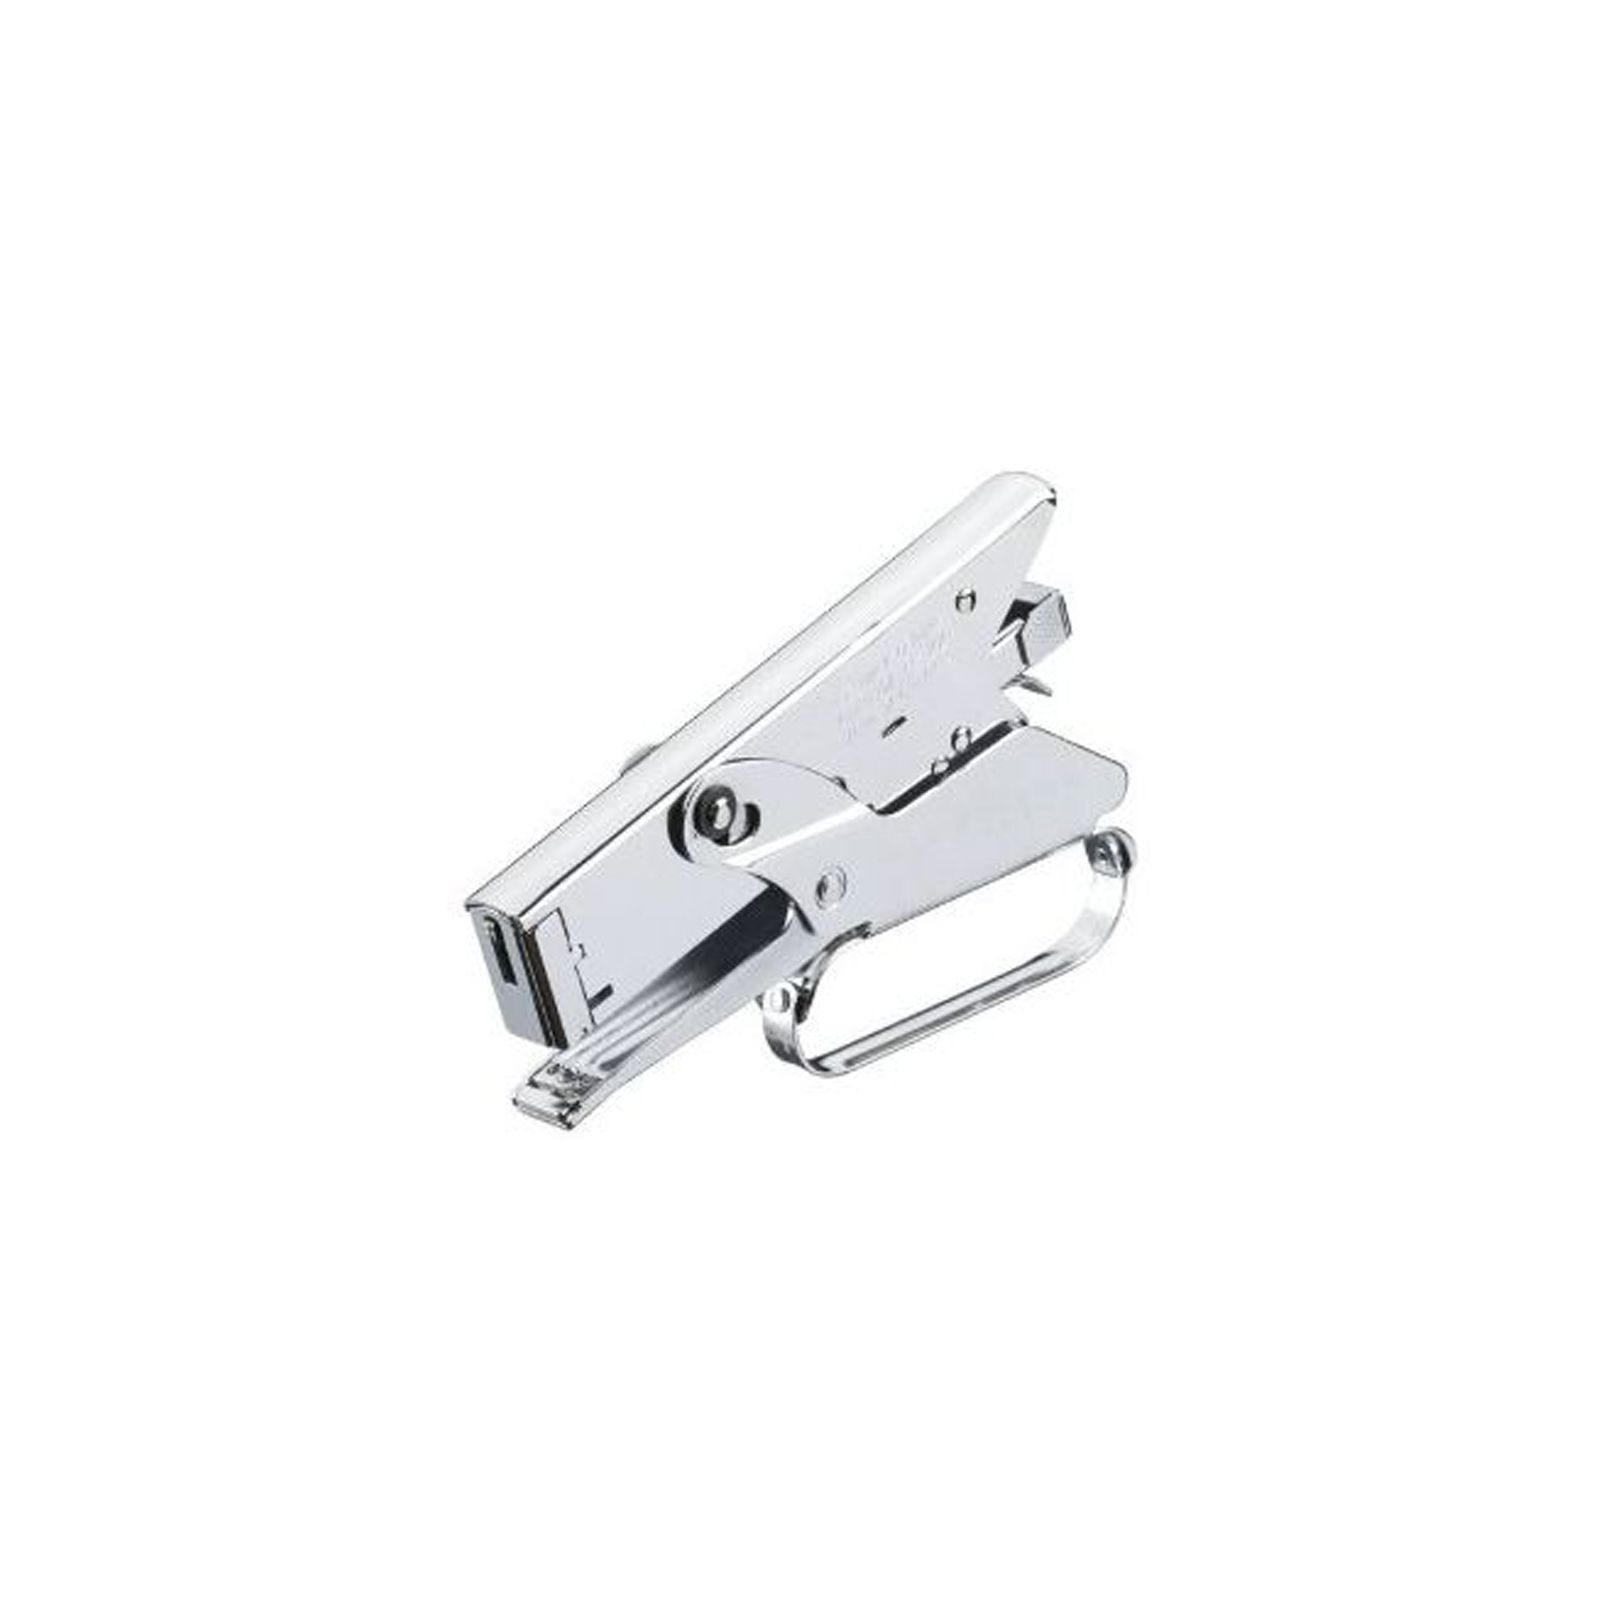 Duro Dyne 10059 - Staples For Rapid 31 Stapler, Quantity 5000